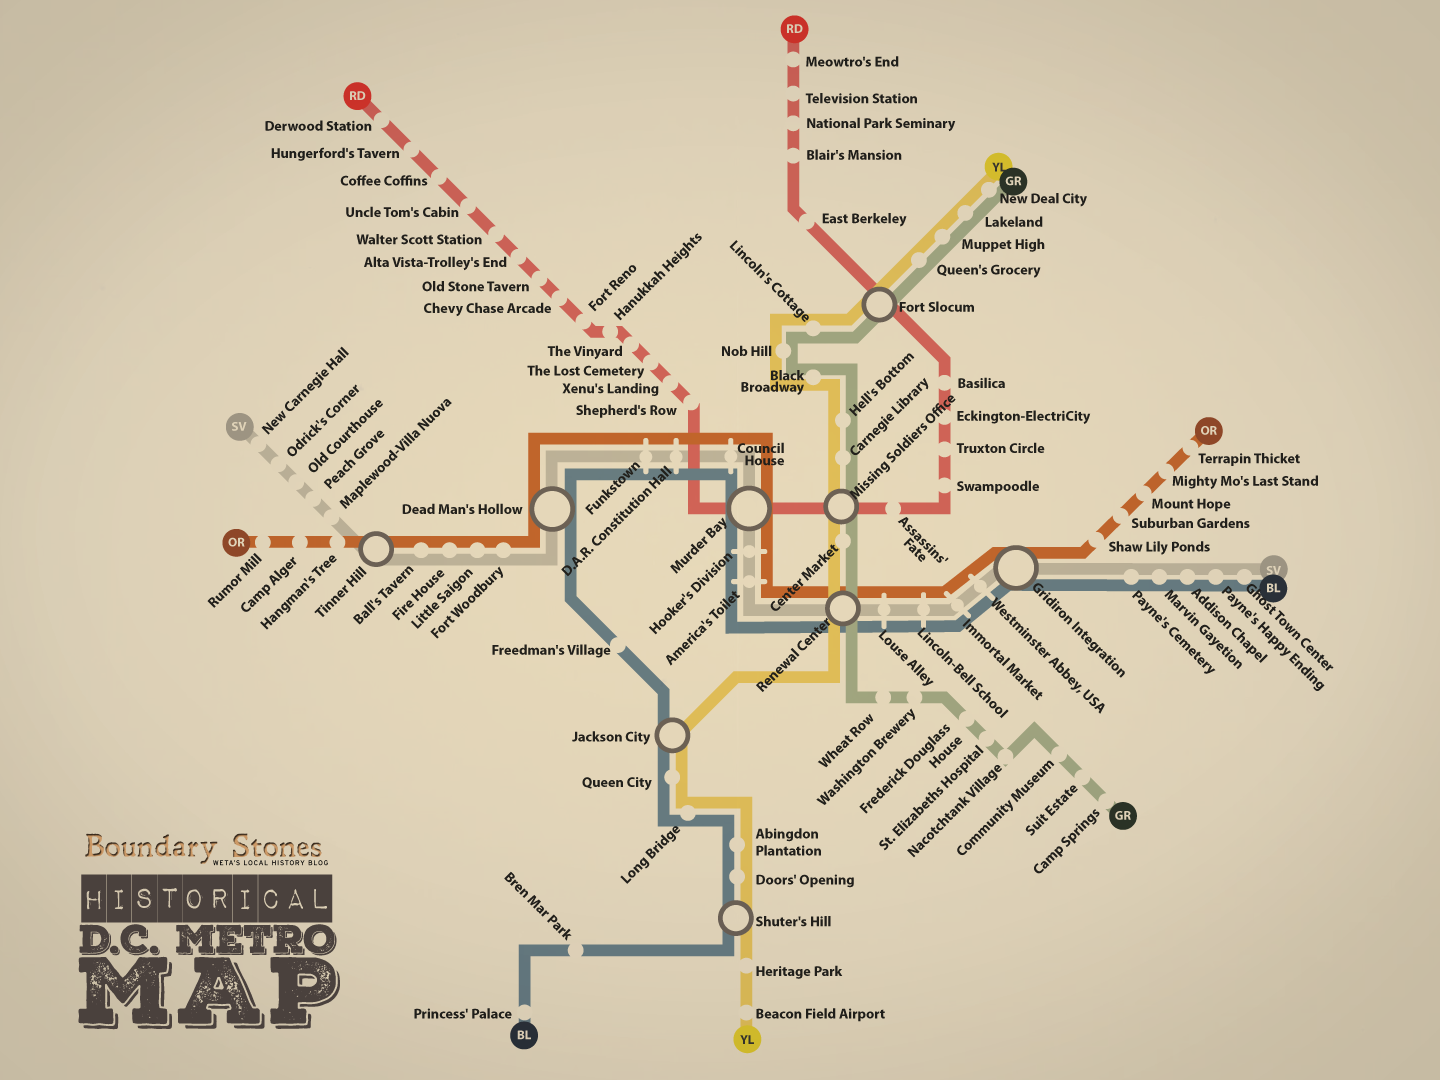 Moderne Historical D.C. Metro Map: All Stations | Boundary Stones: WETA's NP-41